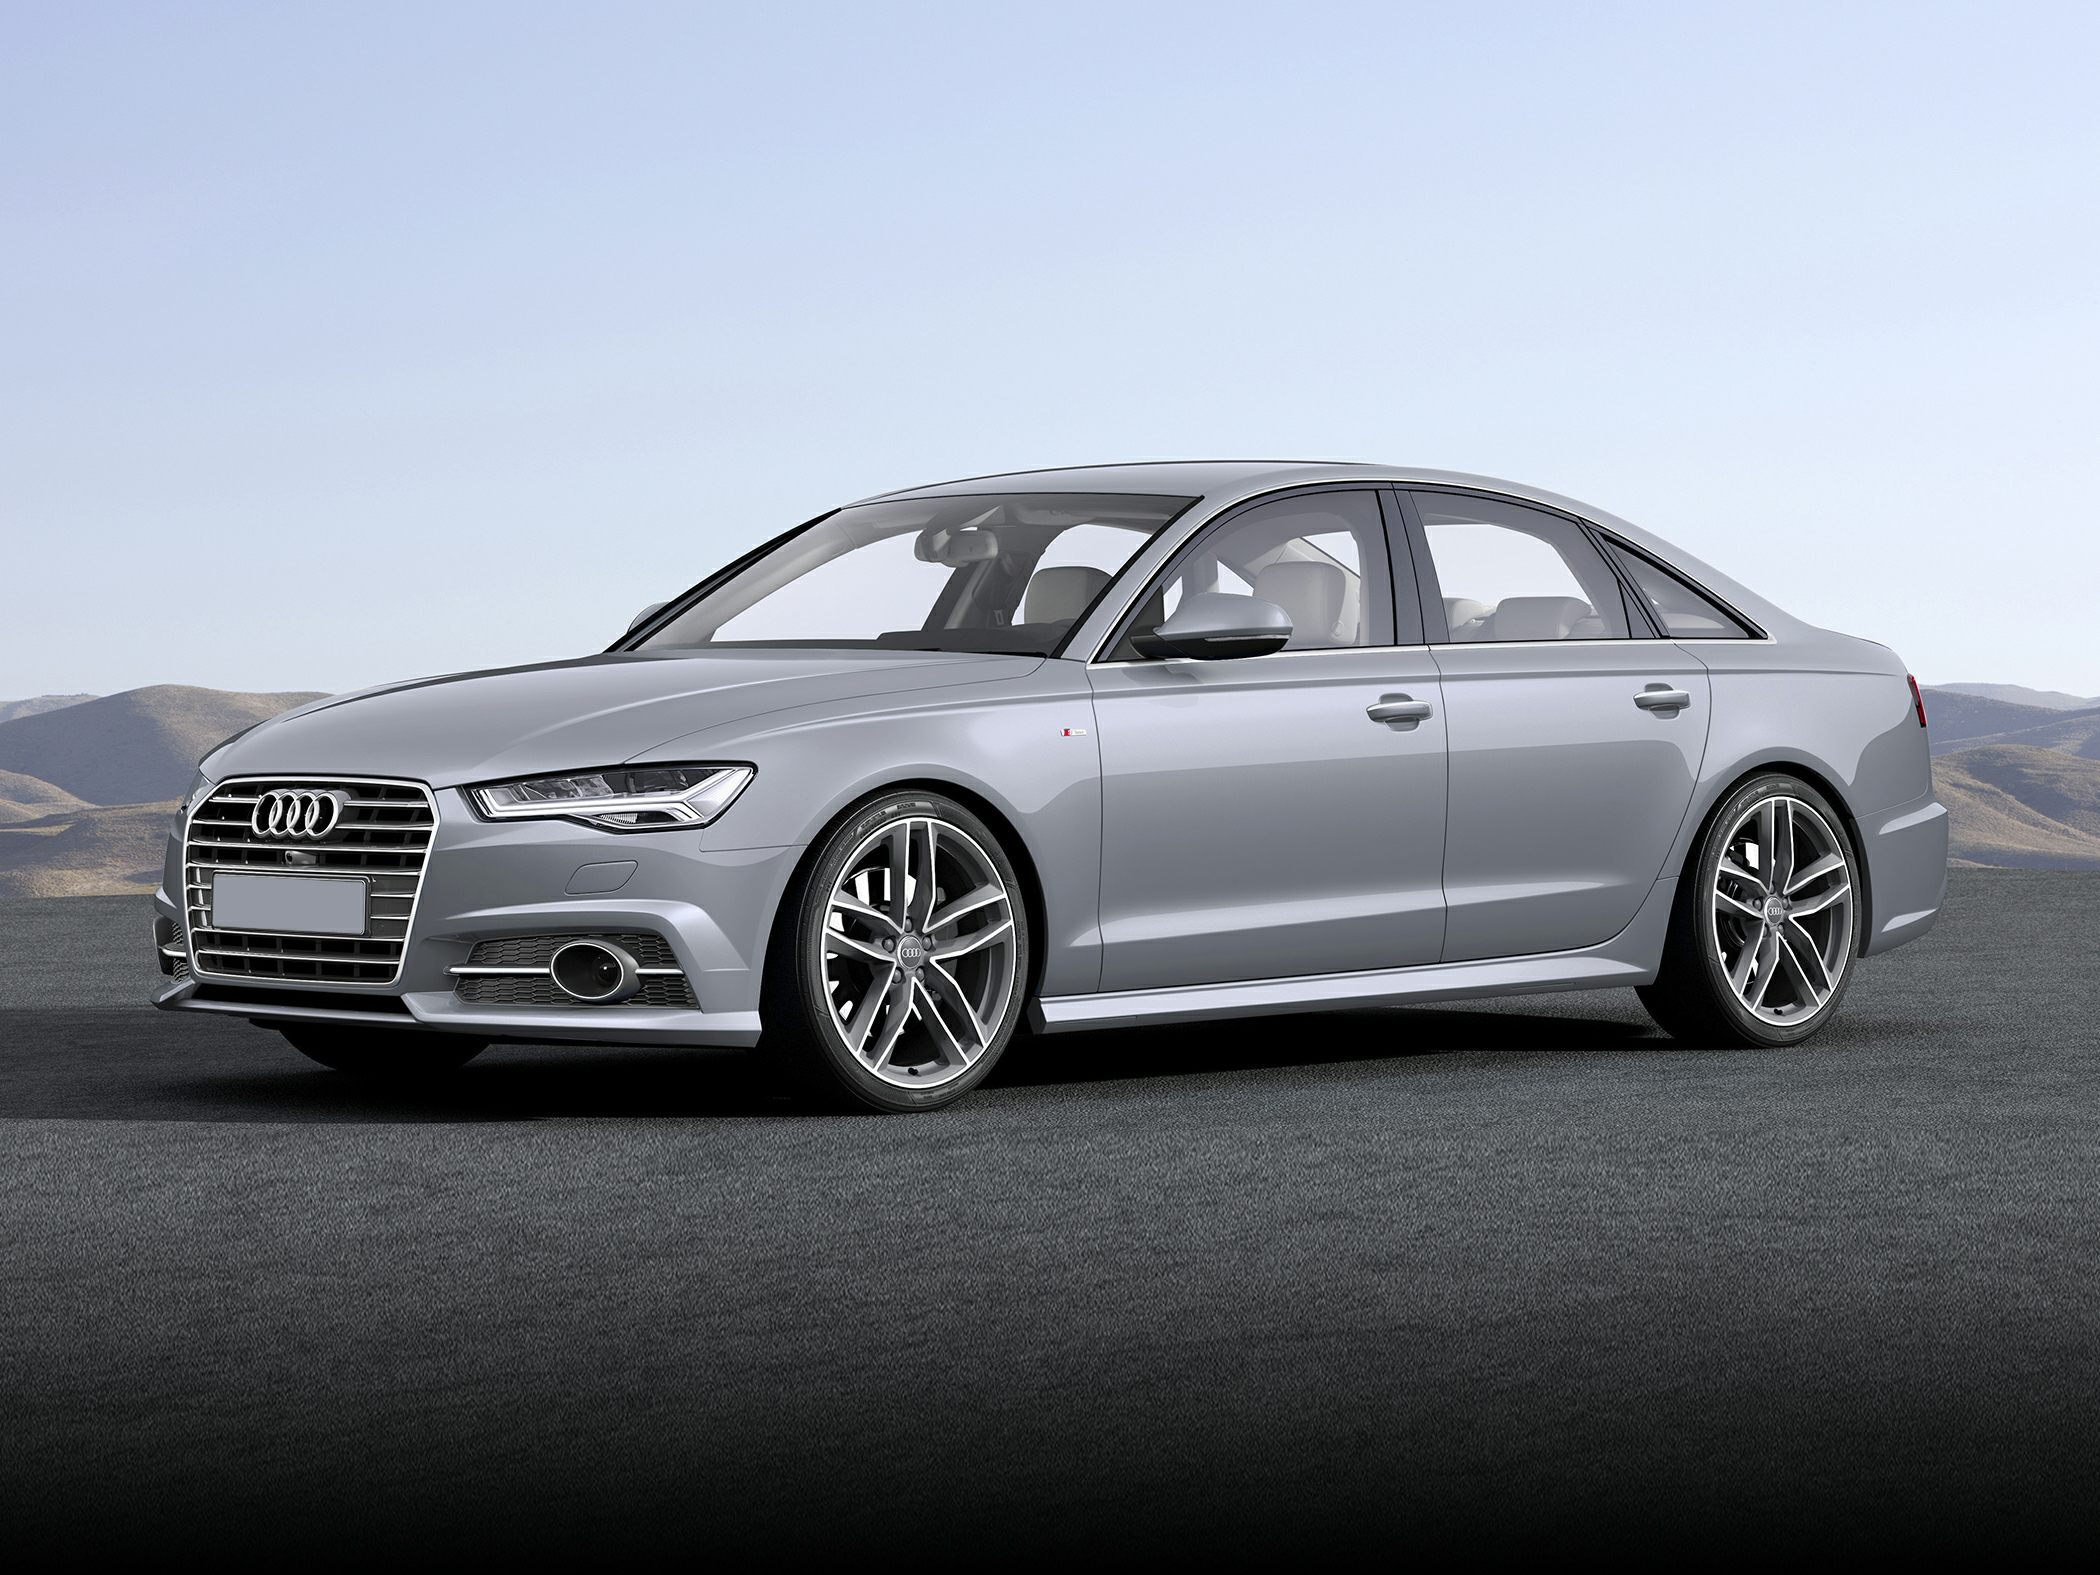 february blog fletcher htm what colors say color jones s your audi here vehicle does